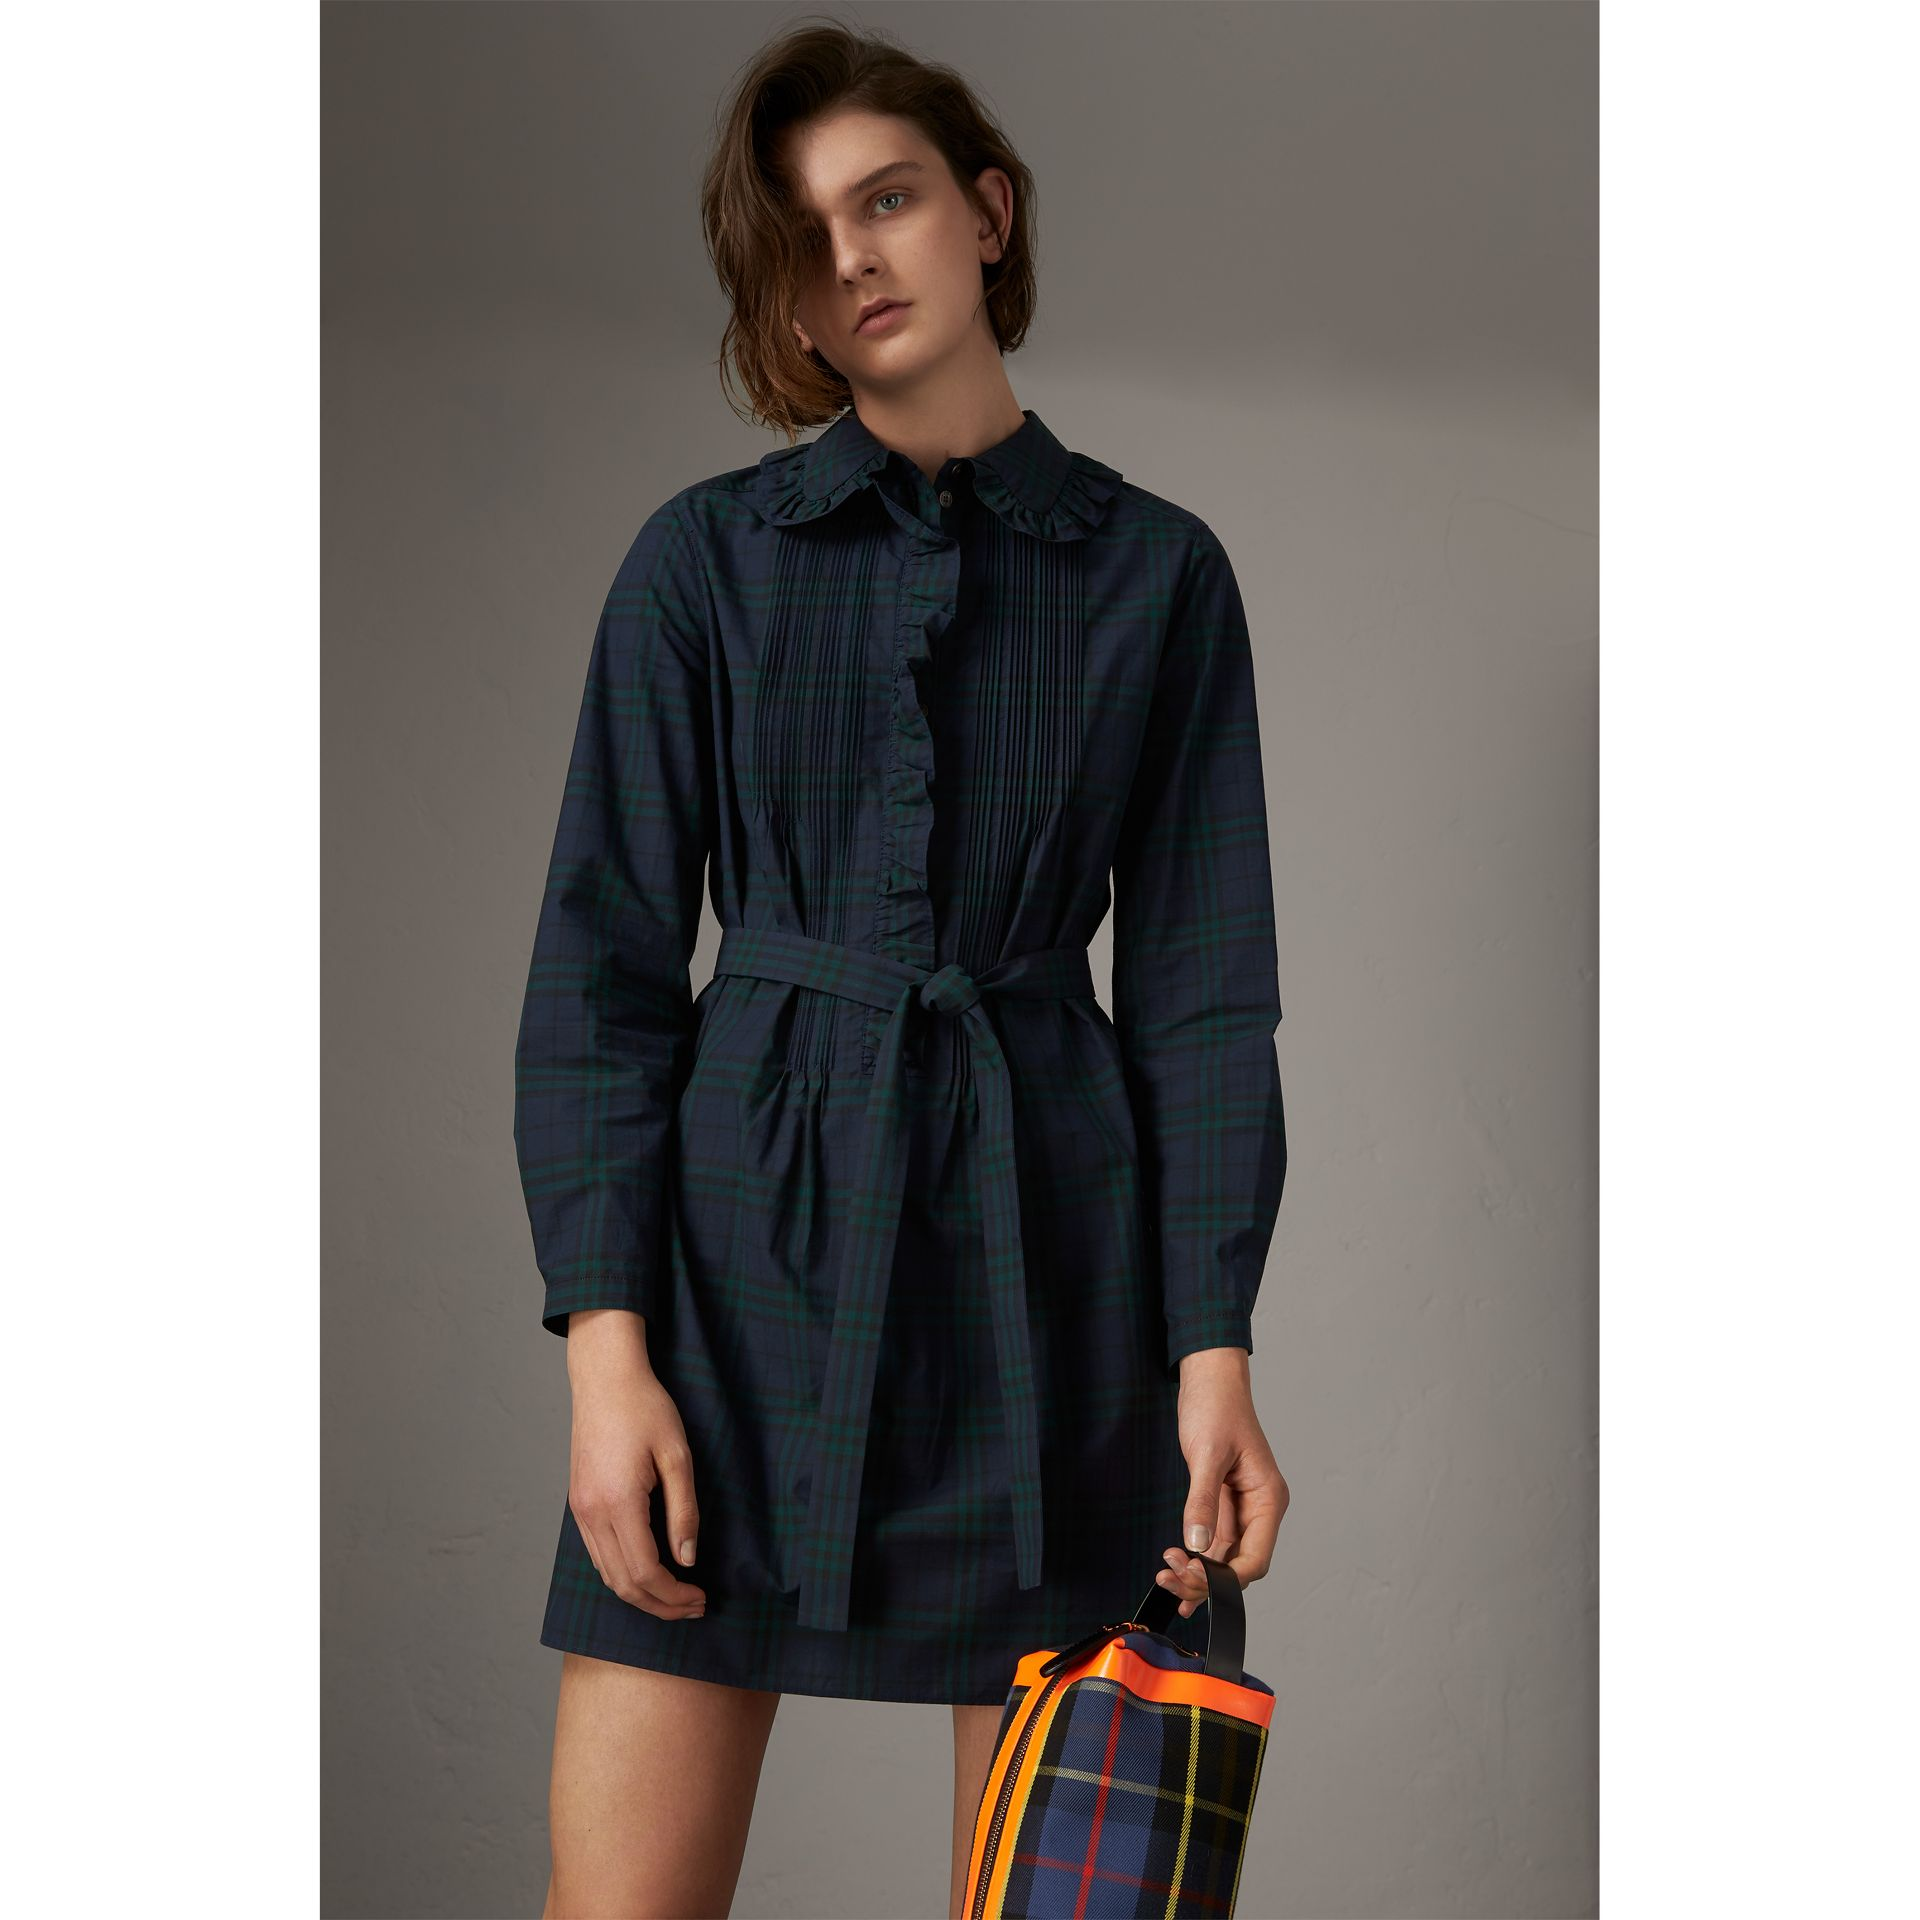 Pintuck Detail Tie-waist Tartan Cotton Tunic Dress in Ink Blue - Women | Burberry Singapore - gallery image 4